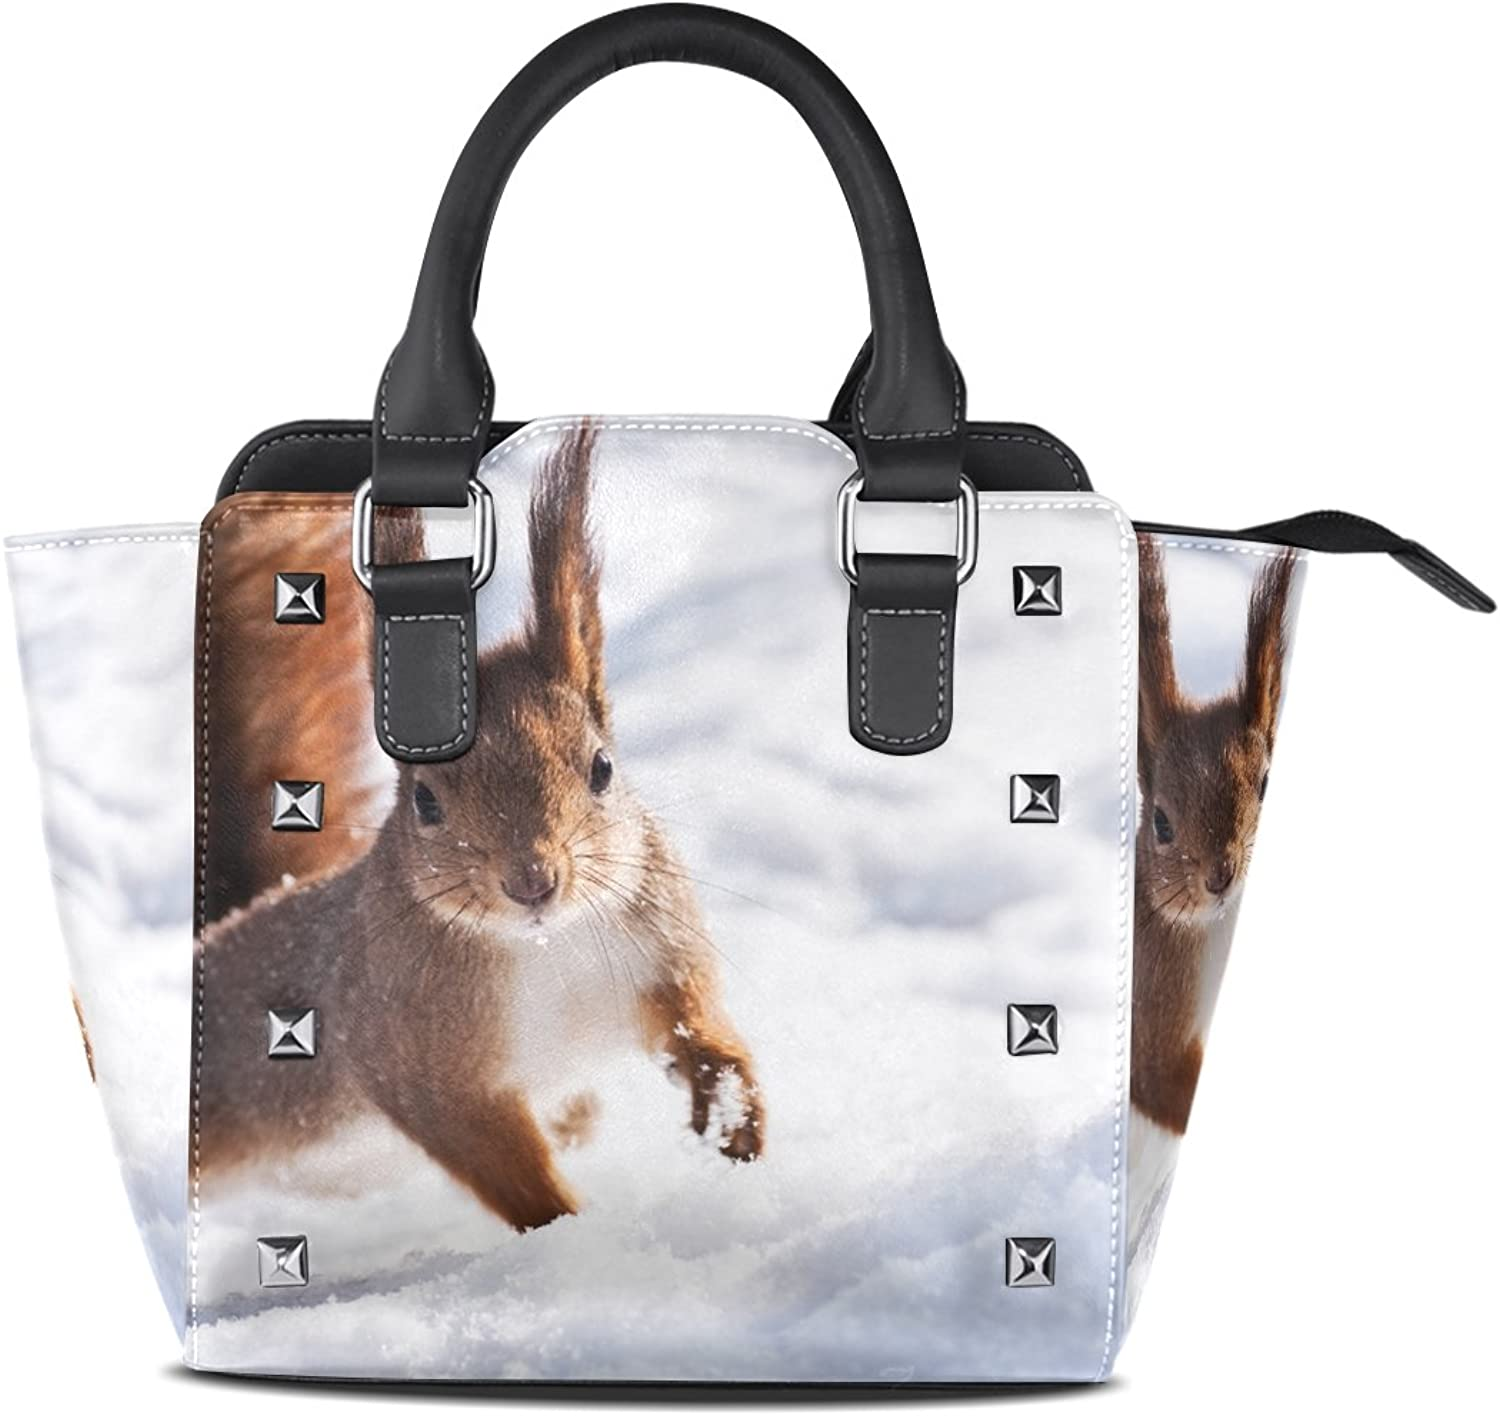 Sunlome Squirrel Winter Snow Print Handbags Women's PU Leather Top-Handle Shoulder Bags